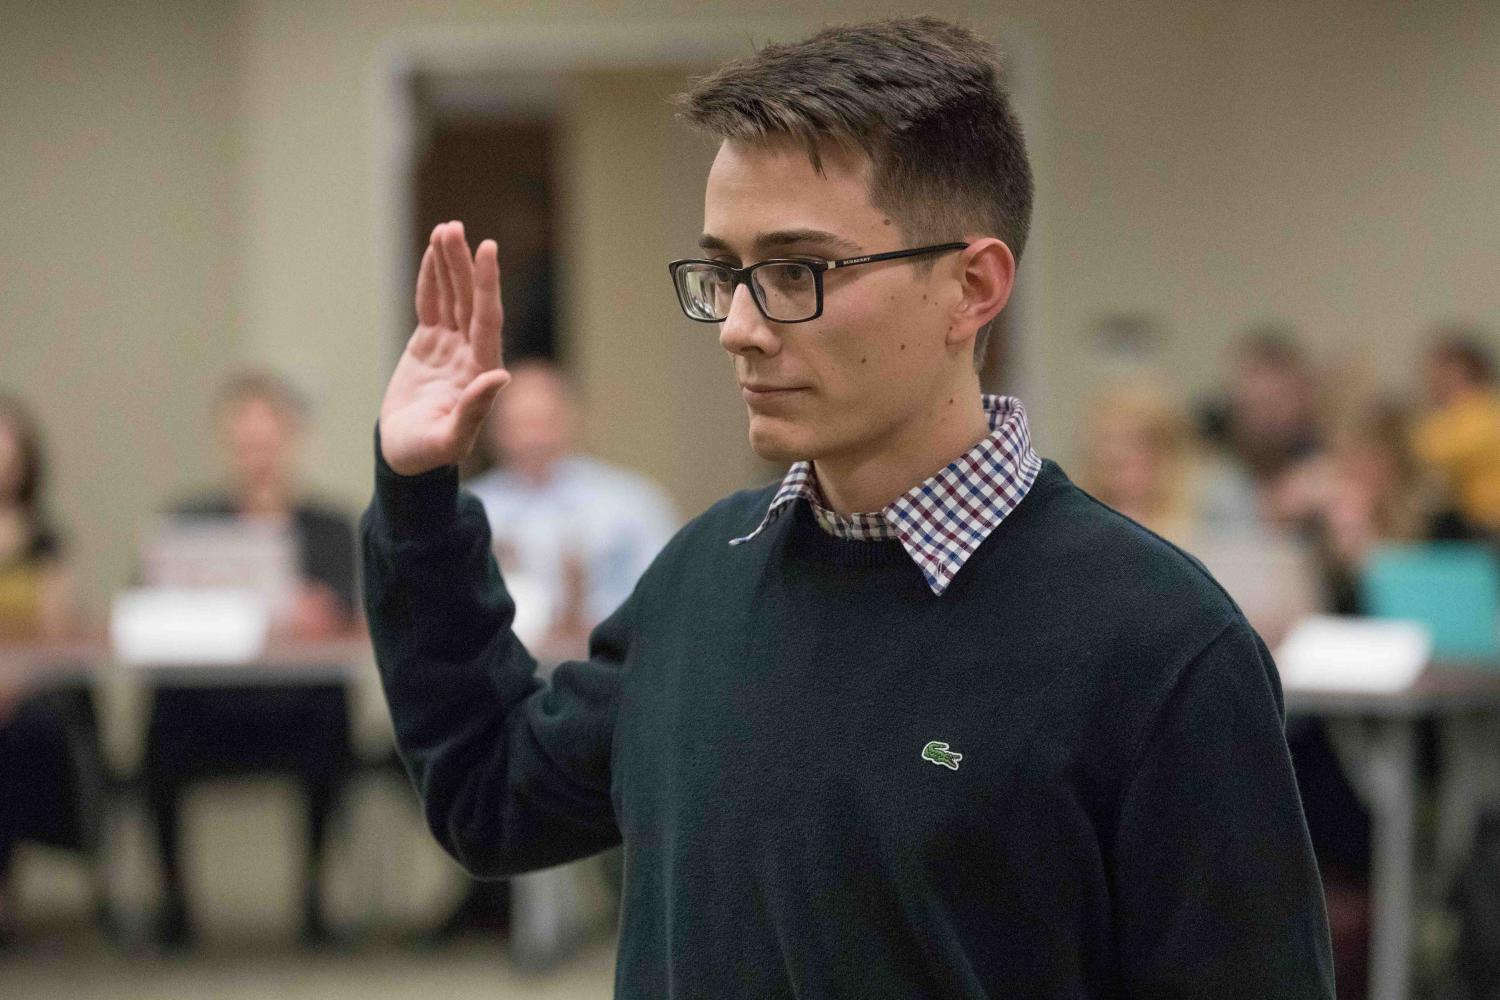 Andrew+Linnabary%2C+former+managing+editor+for+The+Sunflower%2C+is+sworn+in+as+SGA%27s+Director+of+Public+Relations.+Linnabary+will+serve+as+DPR+for+the+60th+Session+of+Wichita+State%27s+Student+Government+Association.+